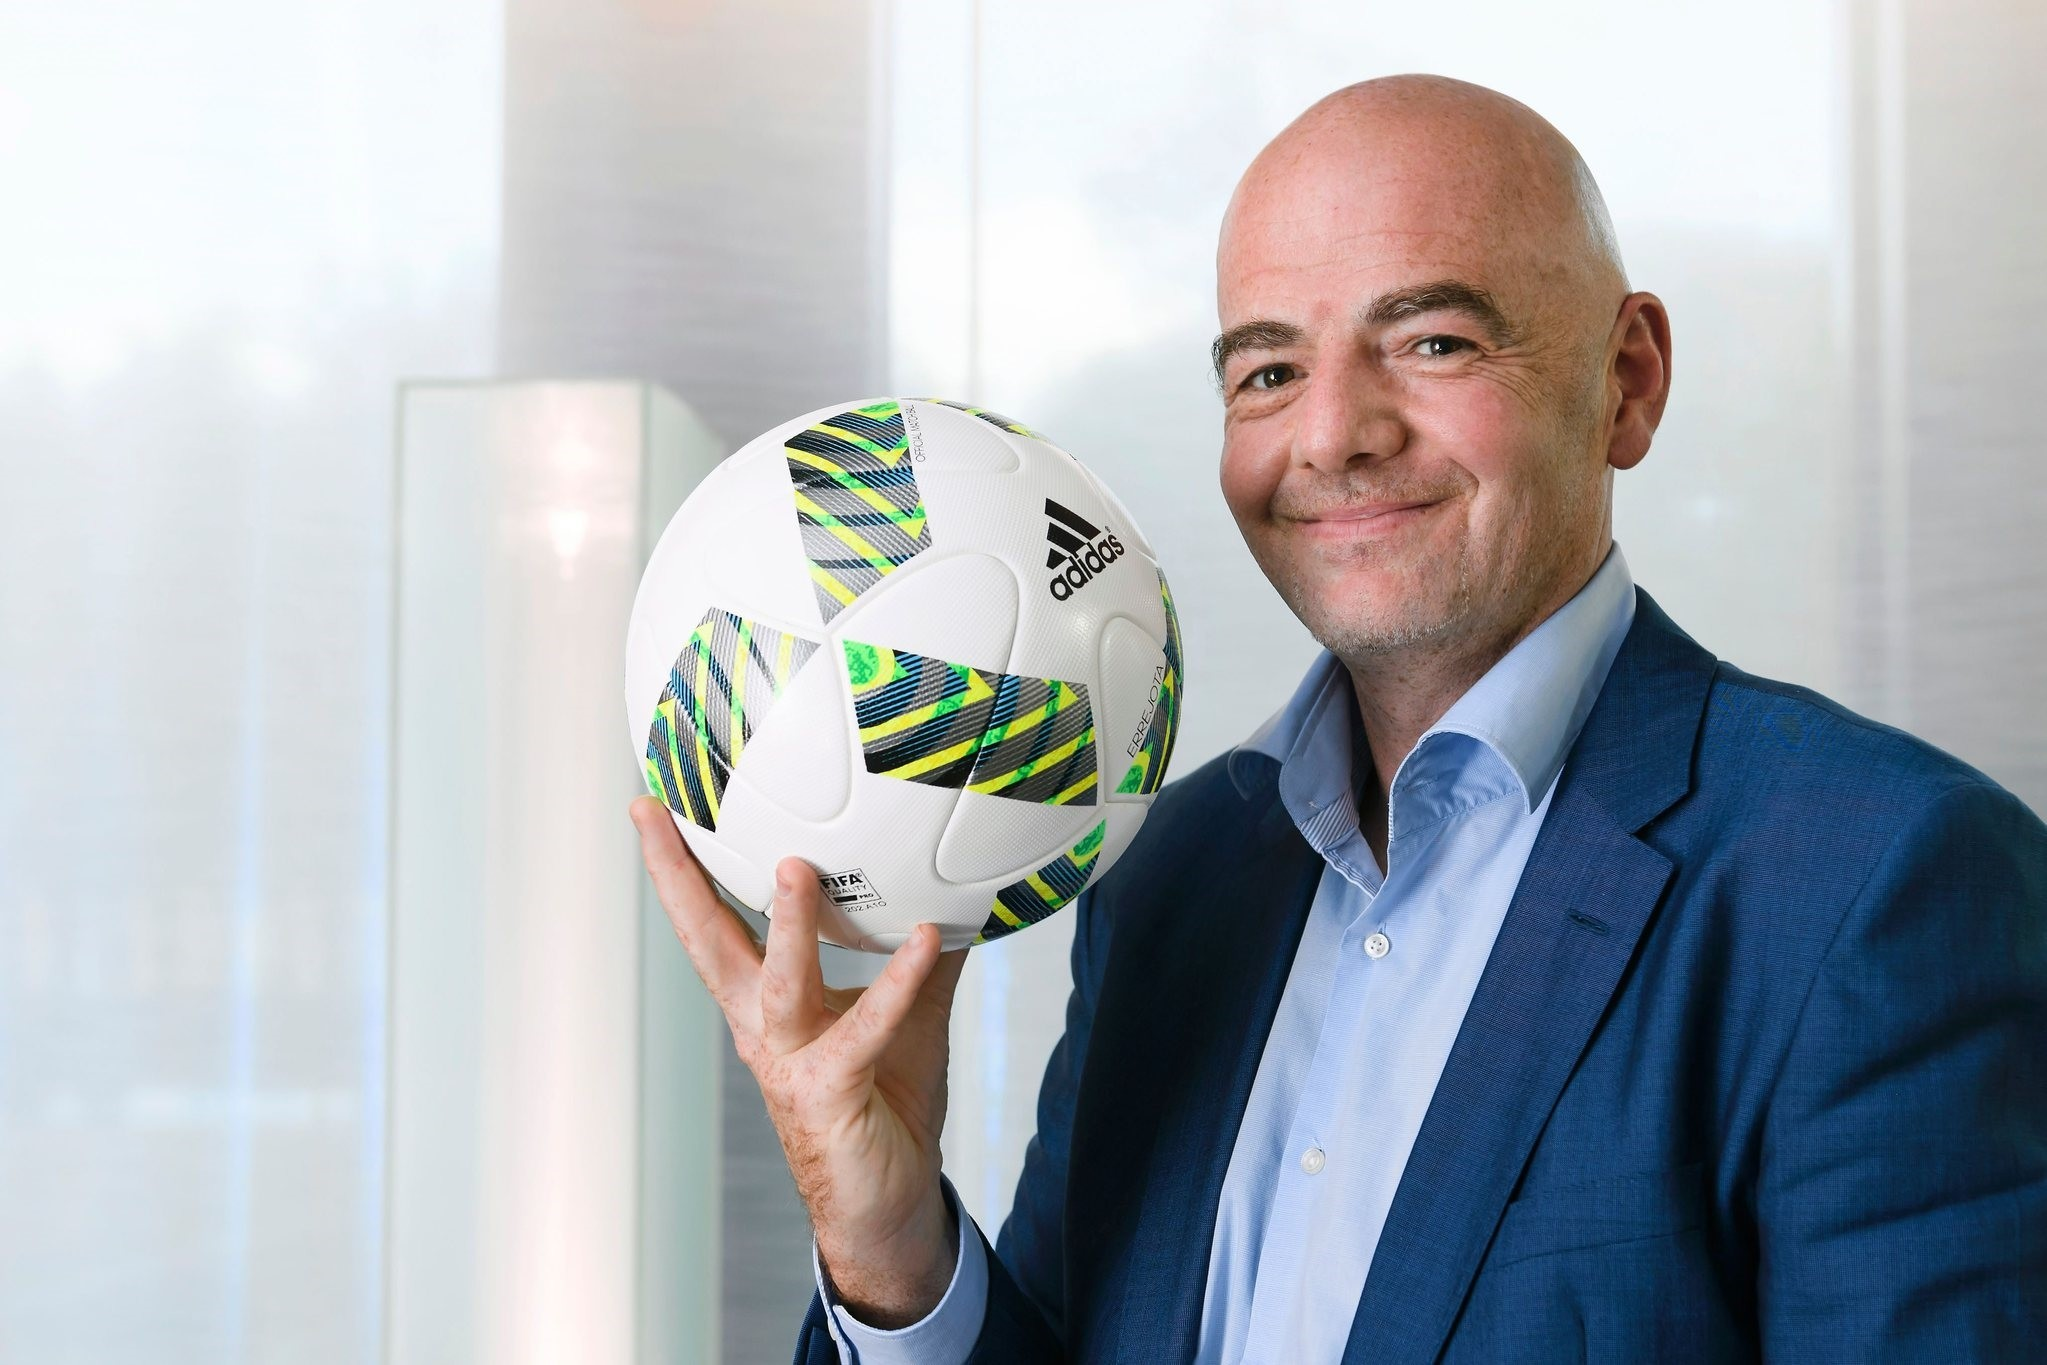 FIFA president Gianni Infantino poses for a picture during a interview with AFP on October 5, 2016 at the world football's governing body headquarters in Zurich. (AFP Photo)